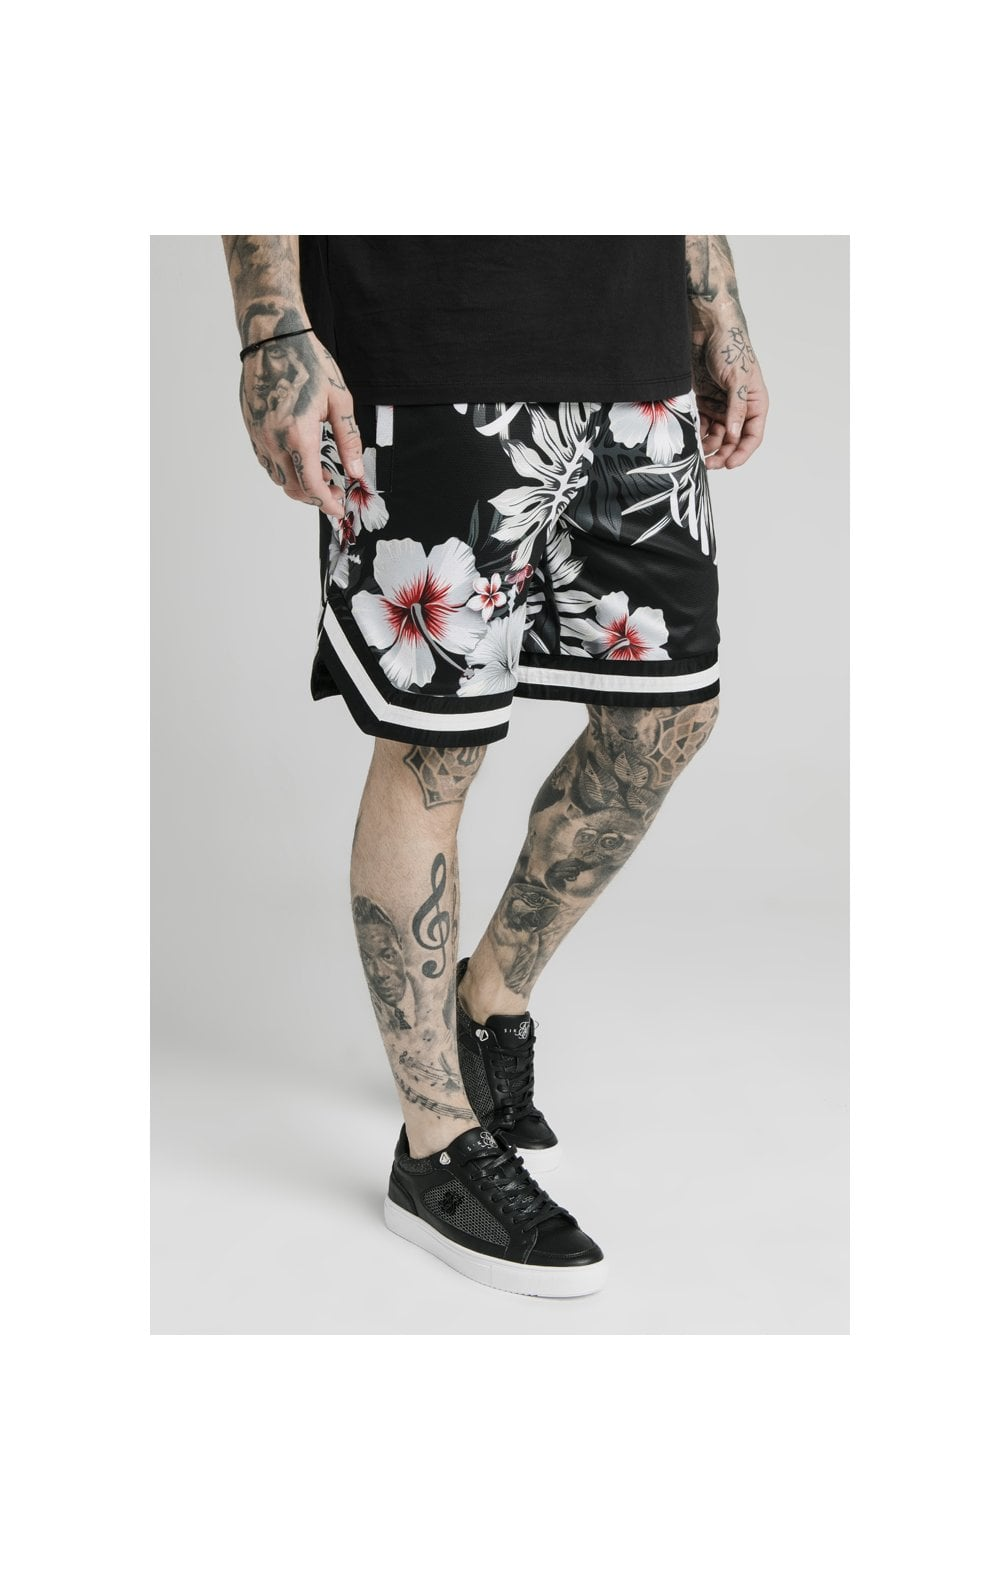 SikSilk Floral Basketball Shorts - Black (2)